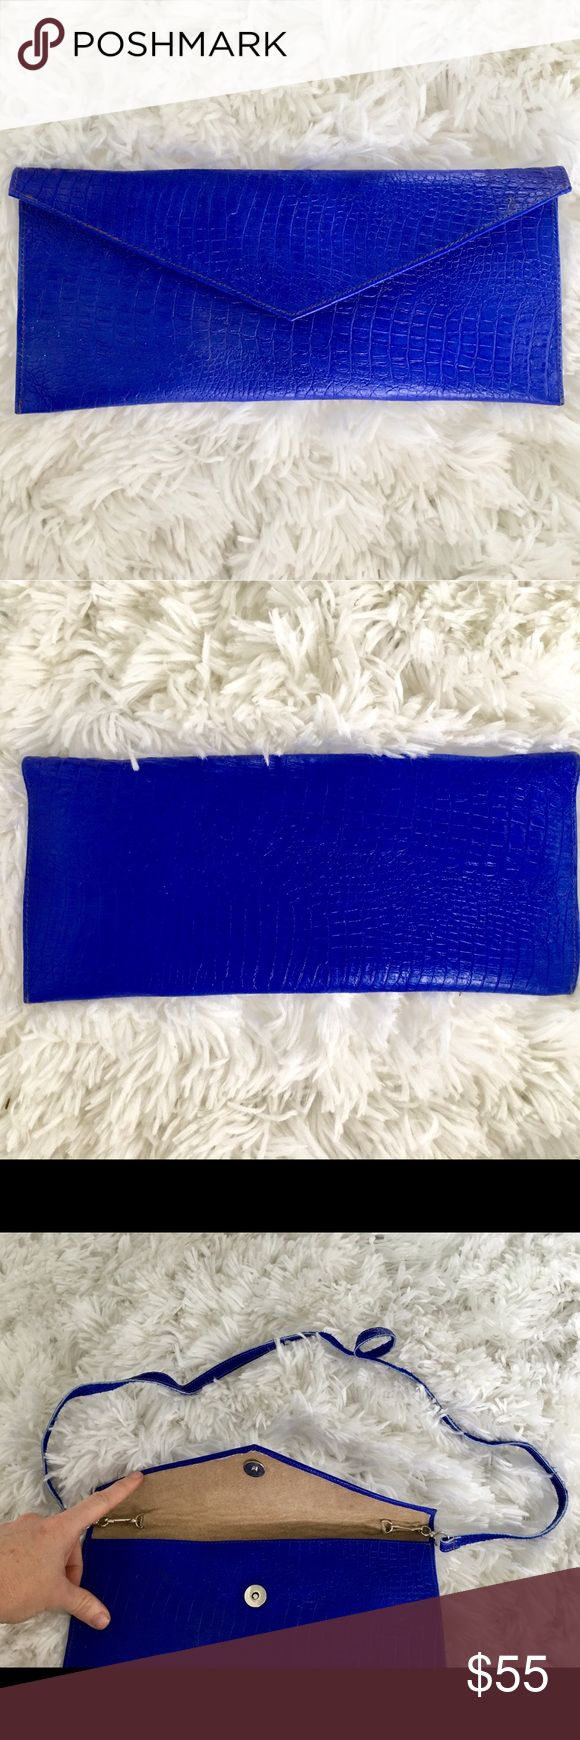 Electric blue clutch. Faux animal skin clutch with snap button closure.  Optional shoulder strap. Bags Clutches & Wristlets